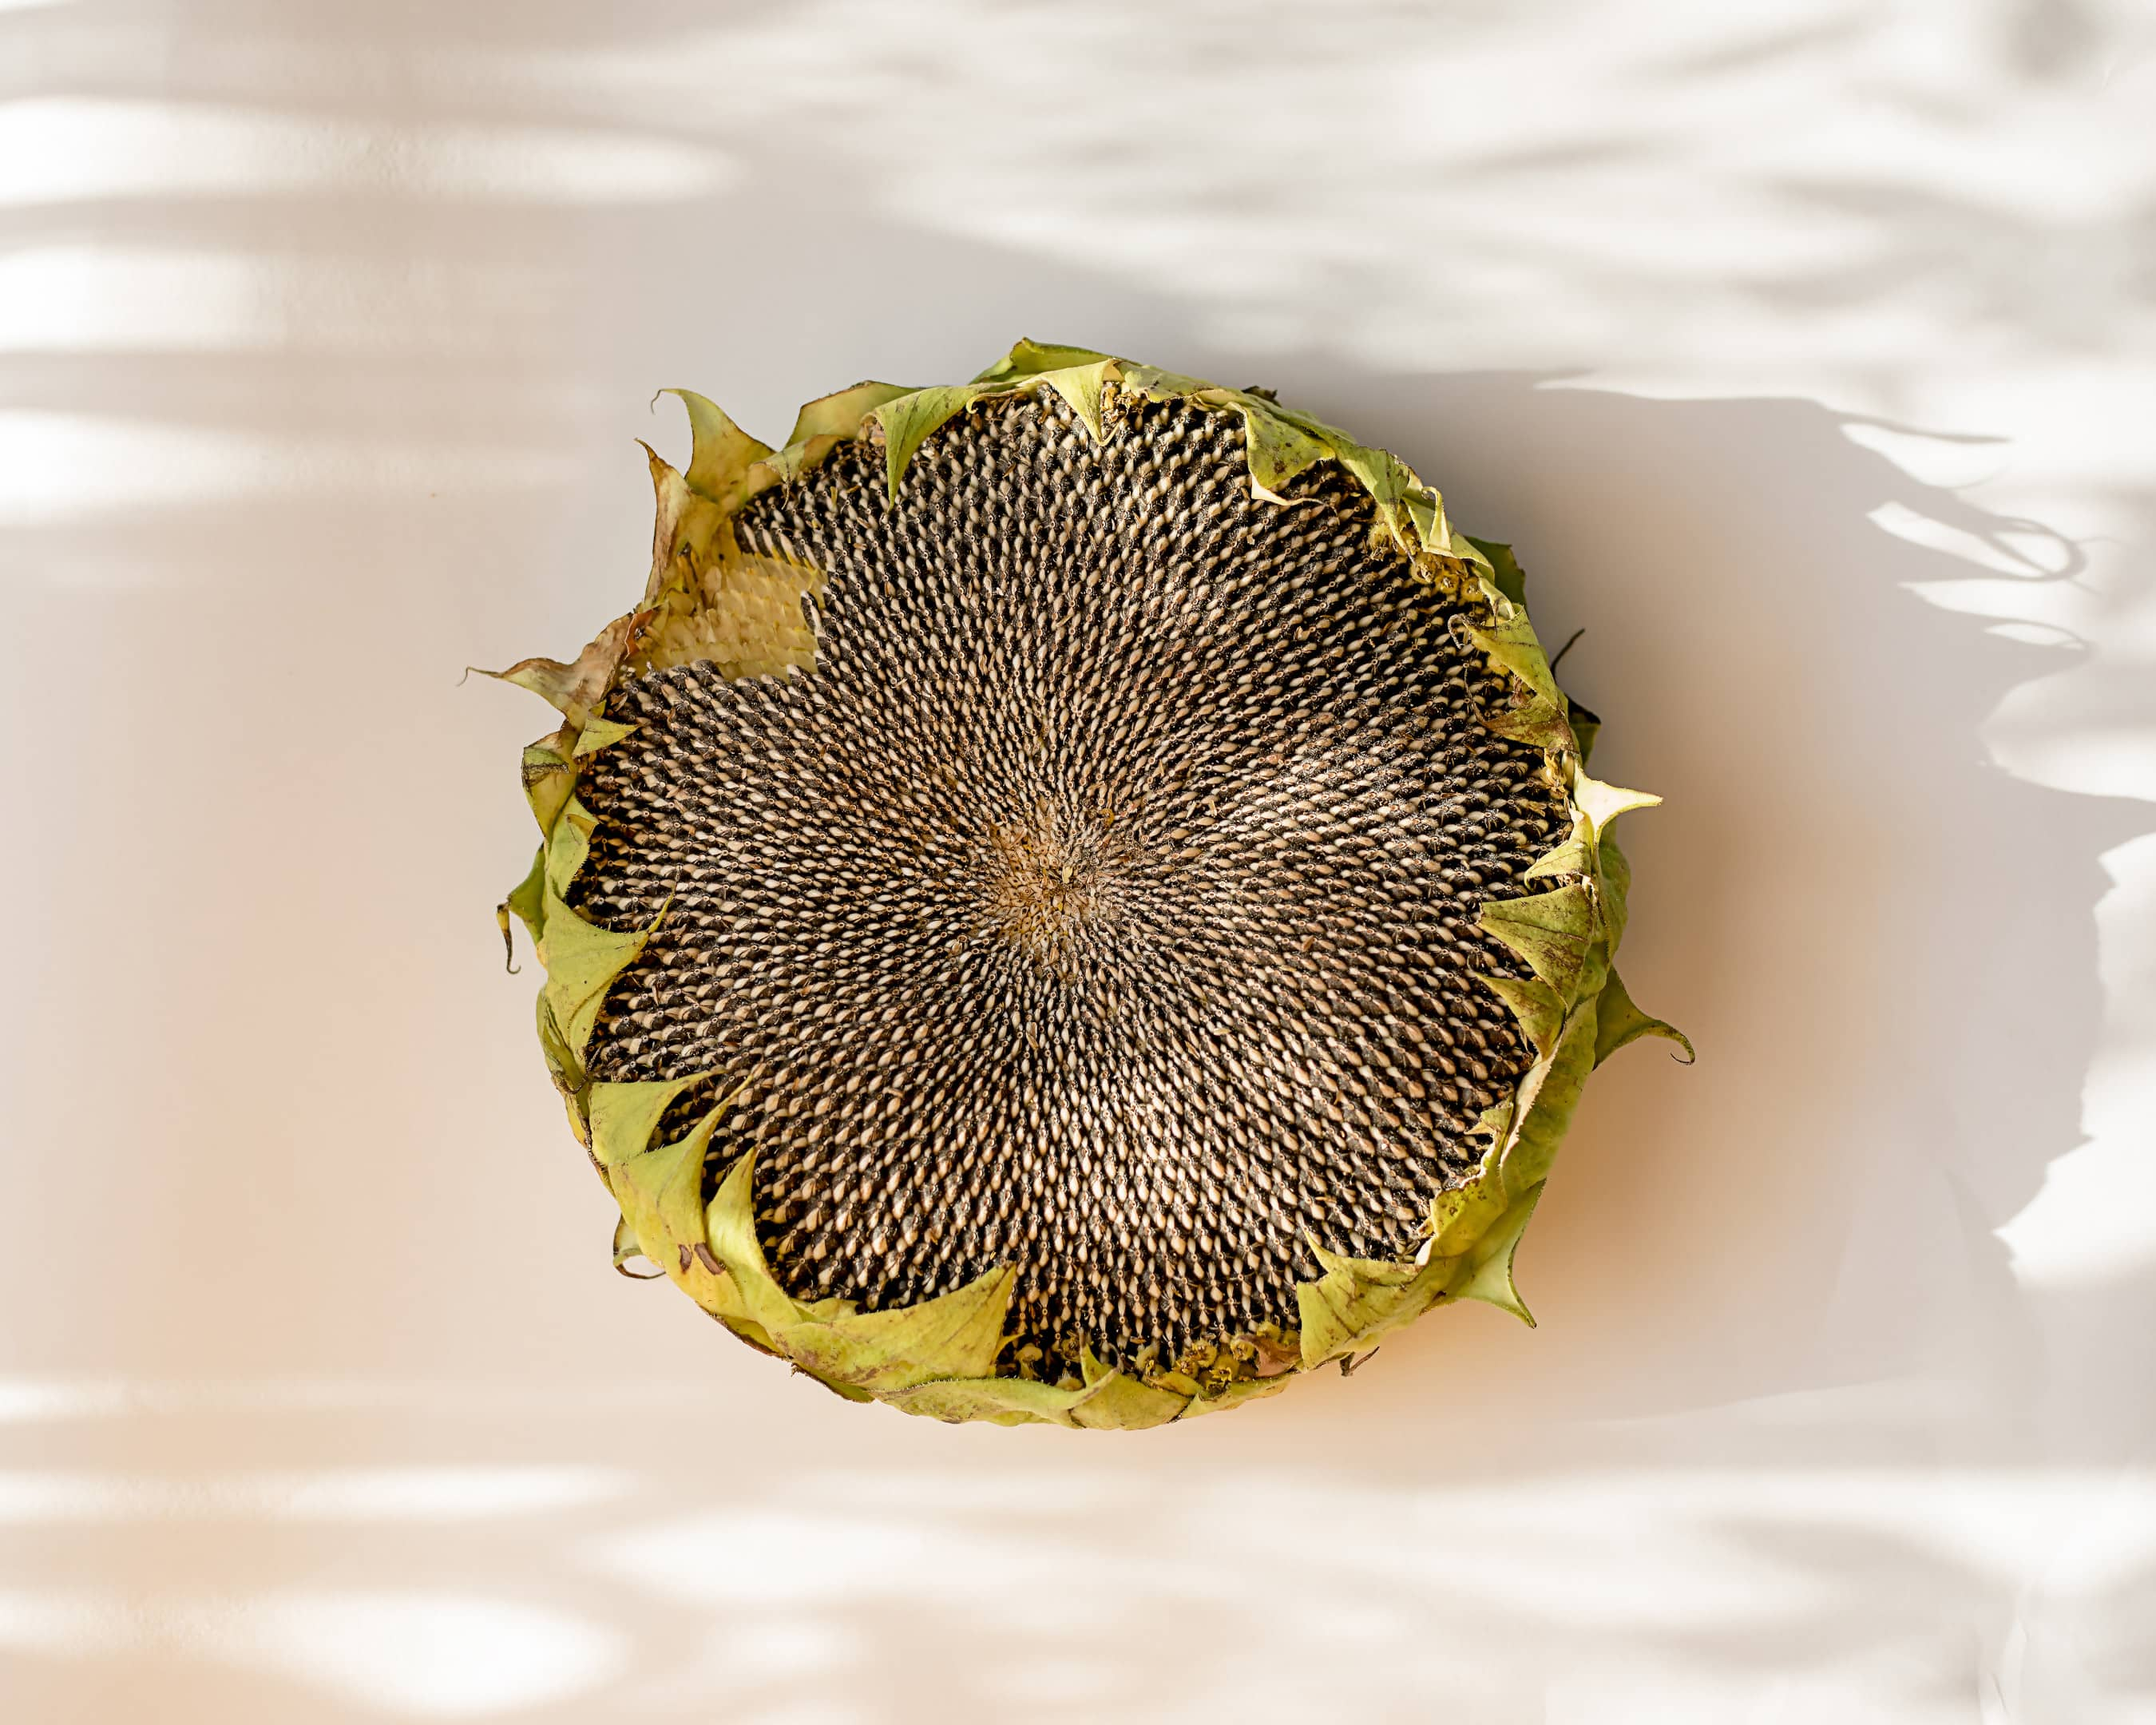 Mature sunflower with seeds on gray table